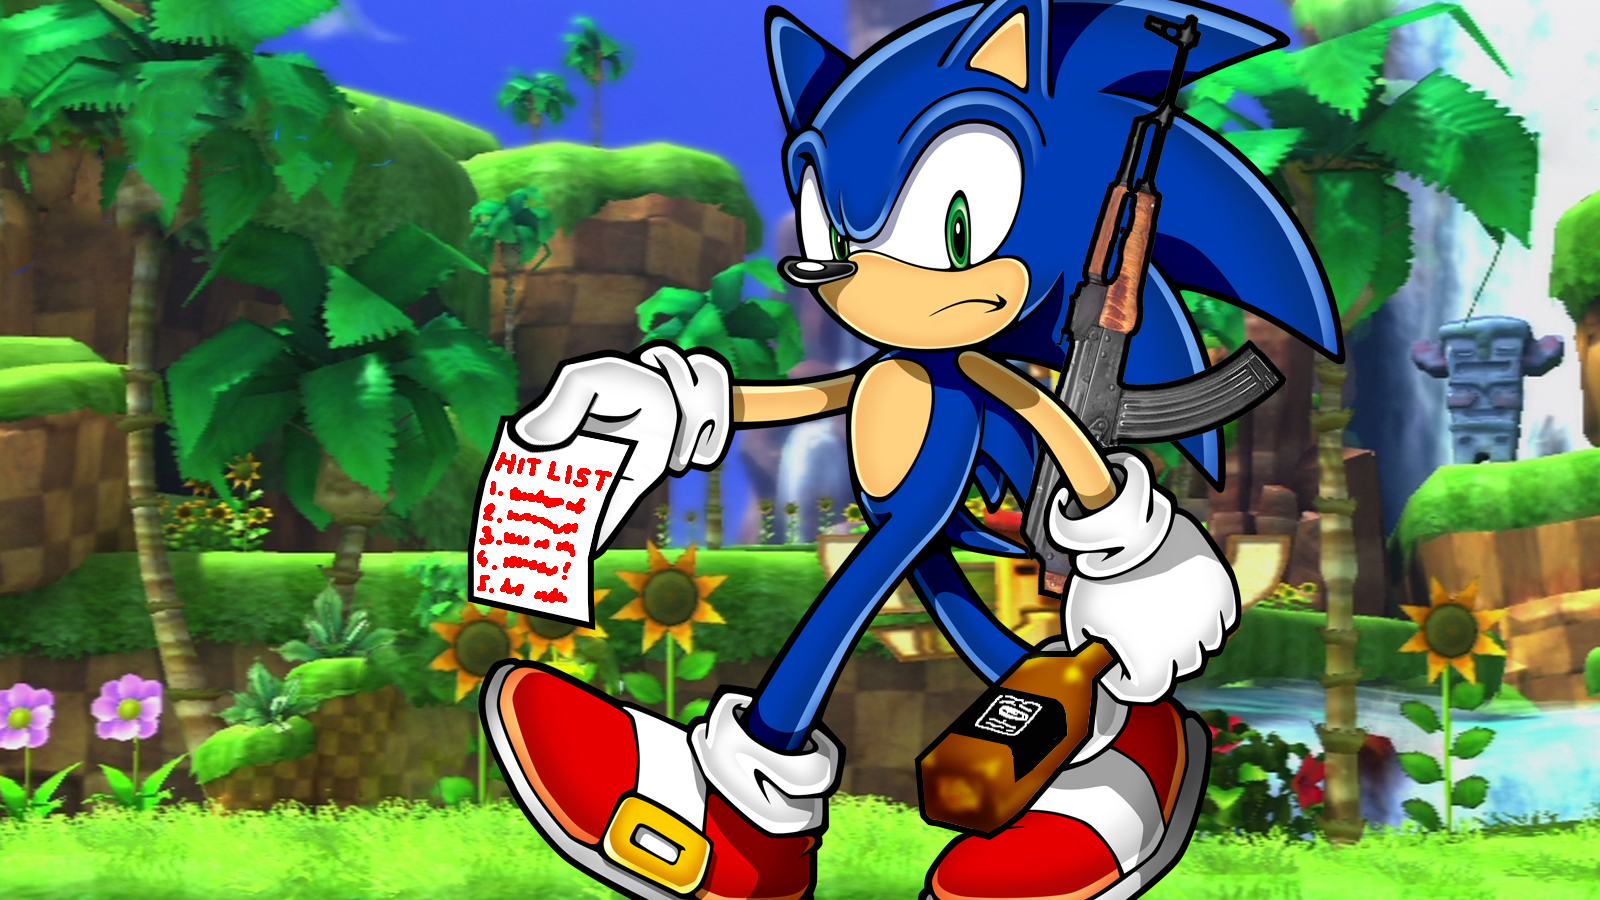 Amy Off Of Sonic sonic hates a lot of people | gamesradar+